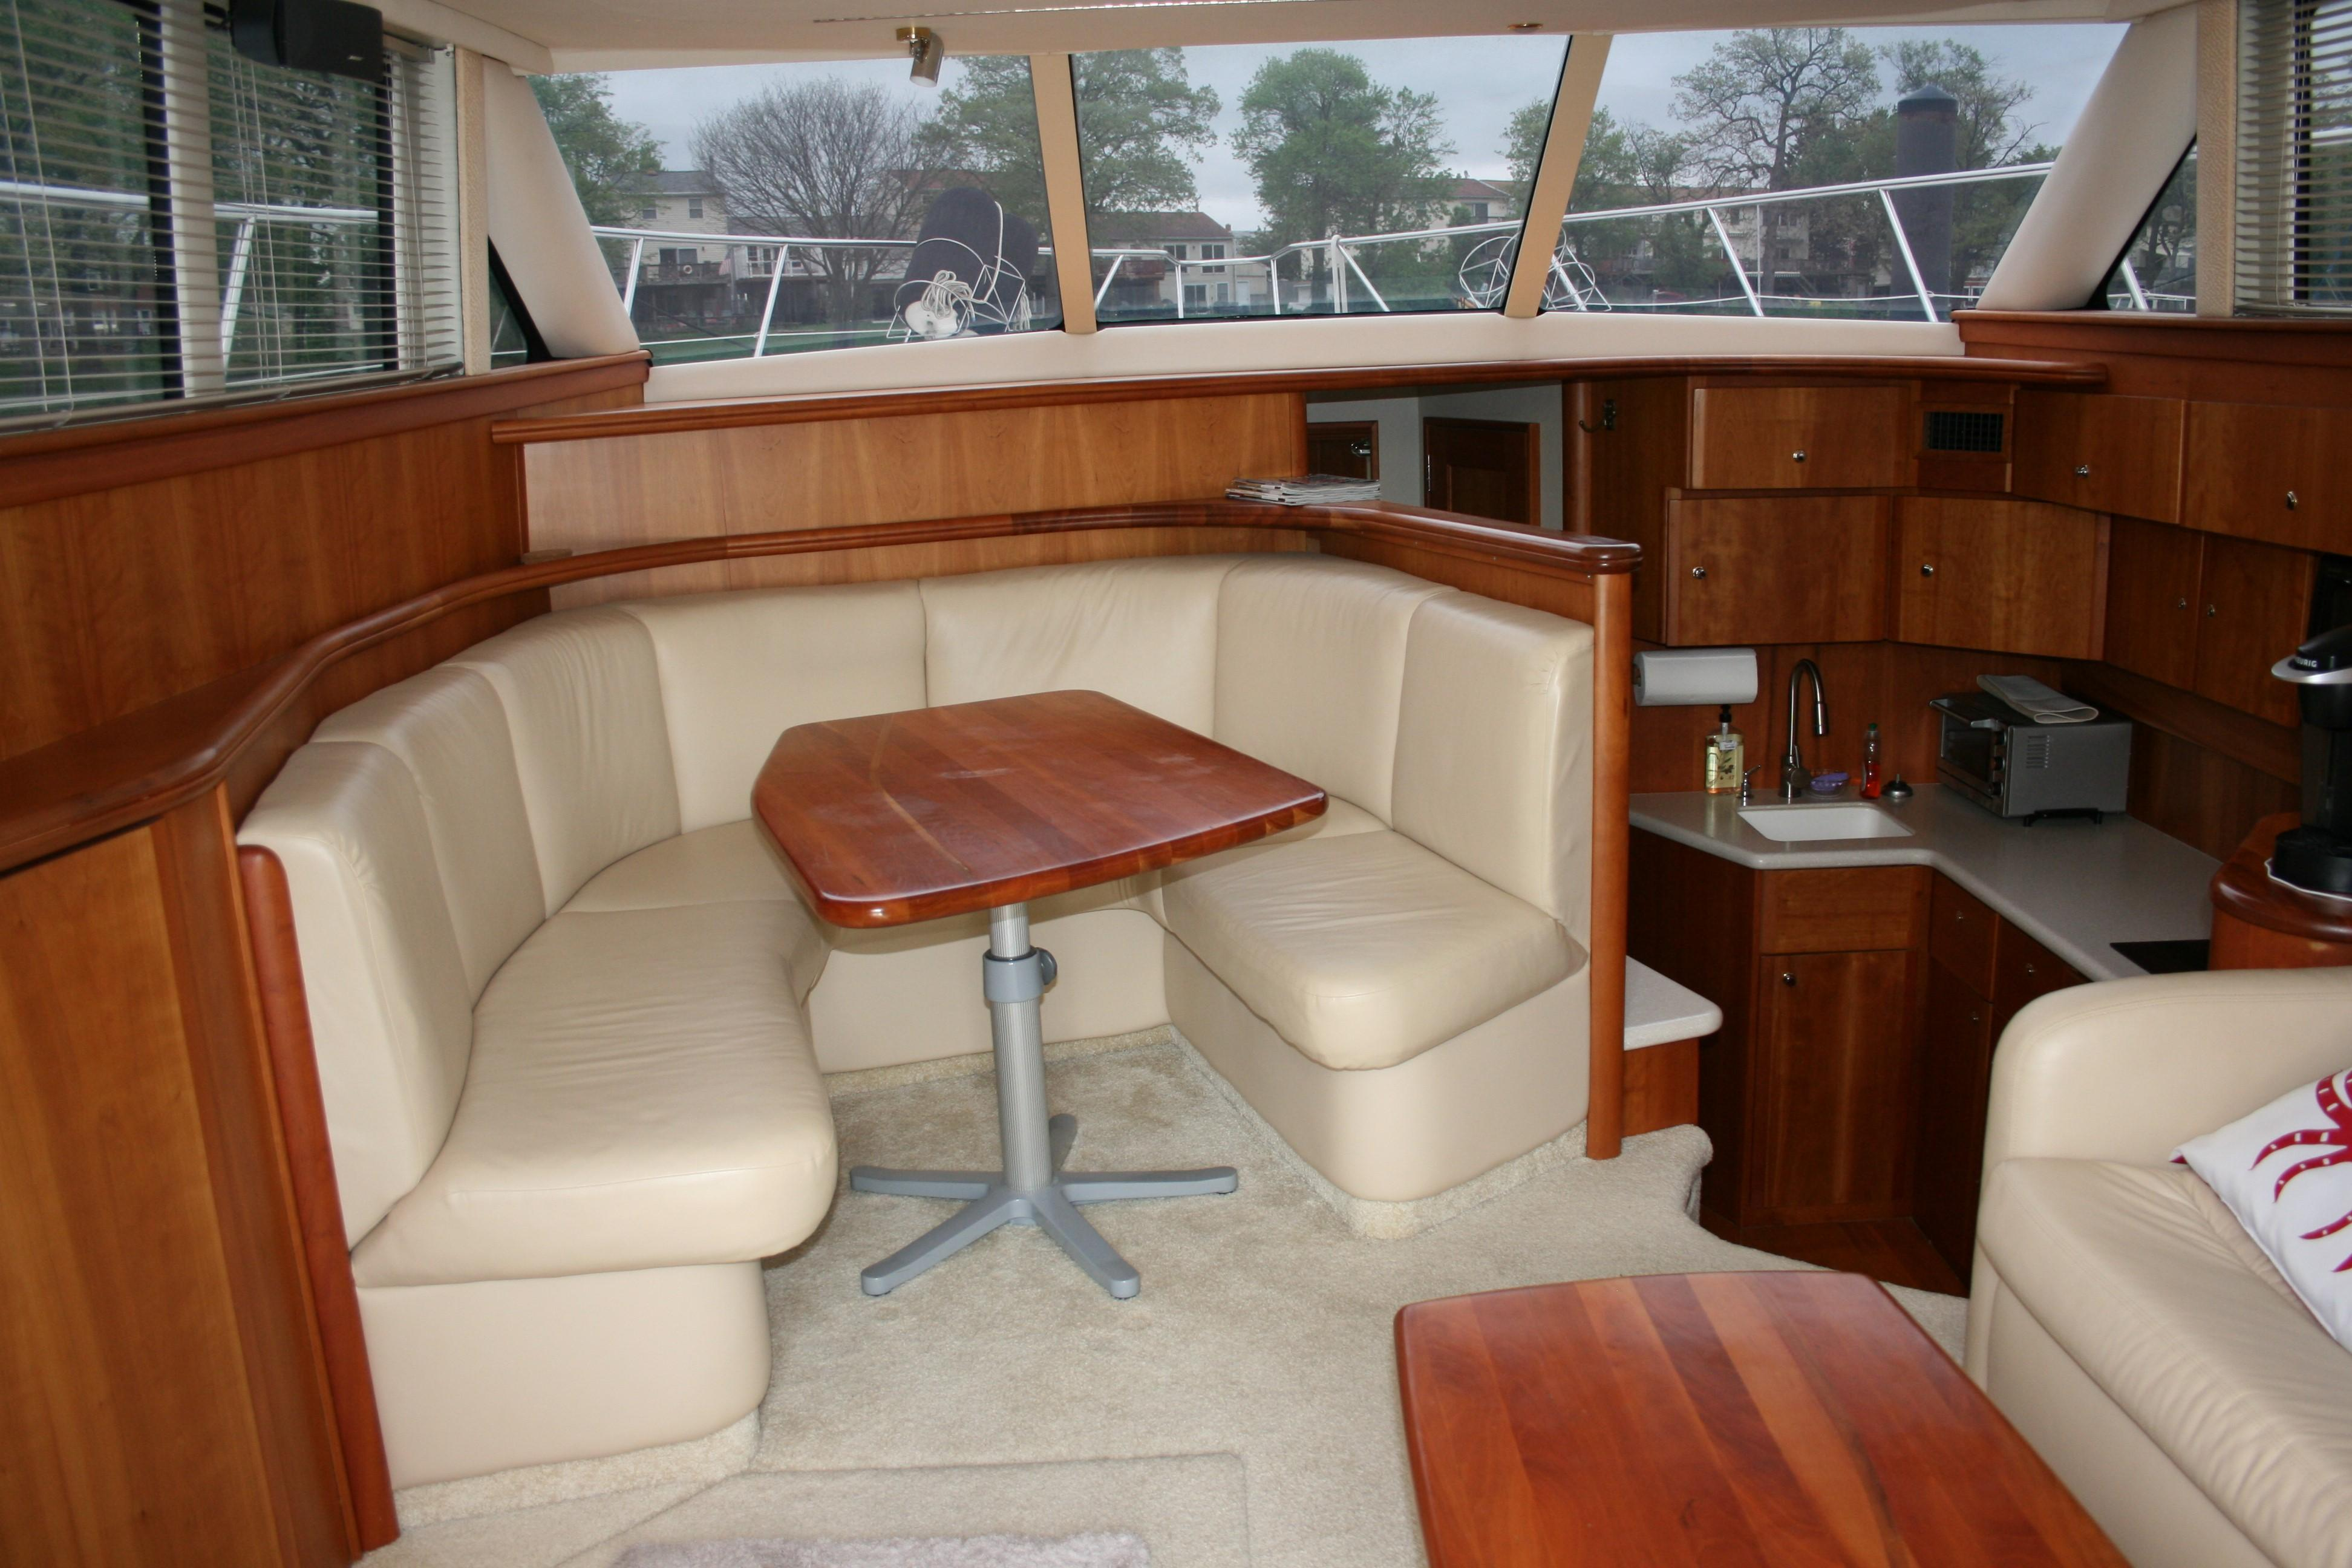 Used Silverton 42 2004 Yacht For Sale Havre De Grace Denison Yachting. Wiring. Woods 6215 Wiring Diagrams At Scoala.co